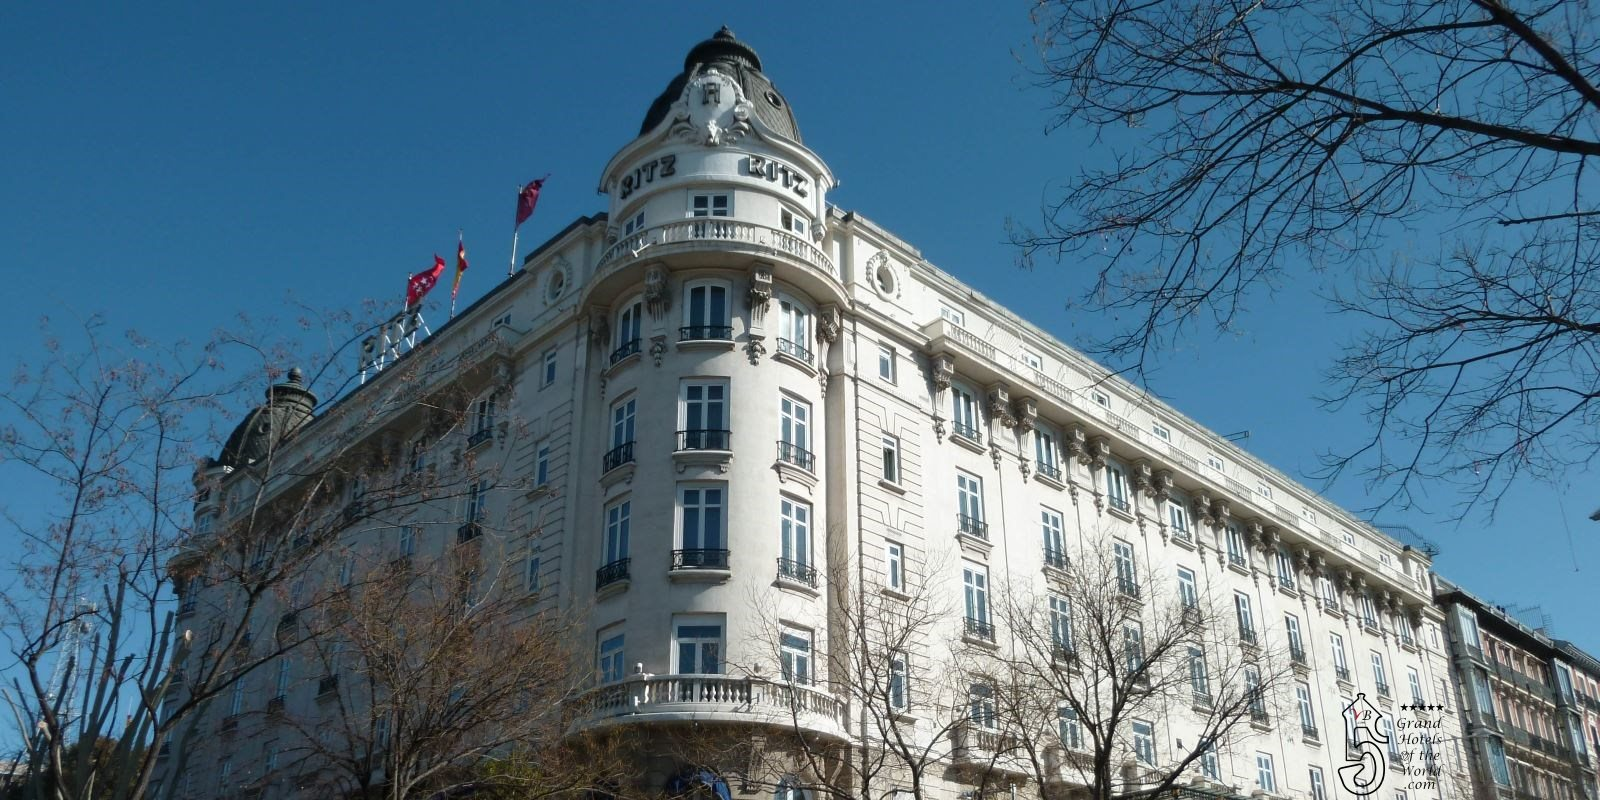 Hotel Ritz in Madrid